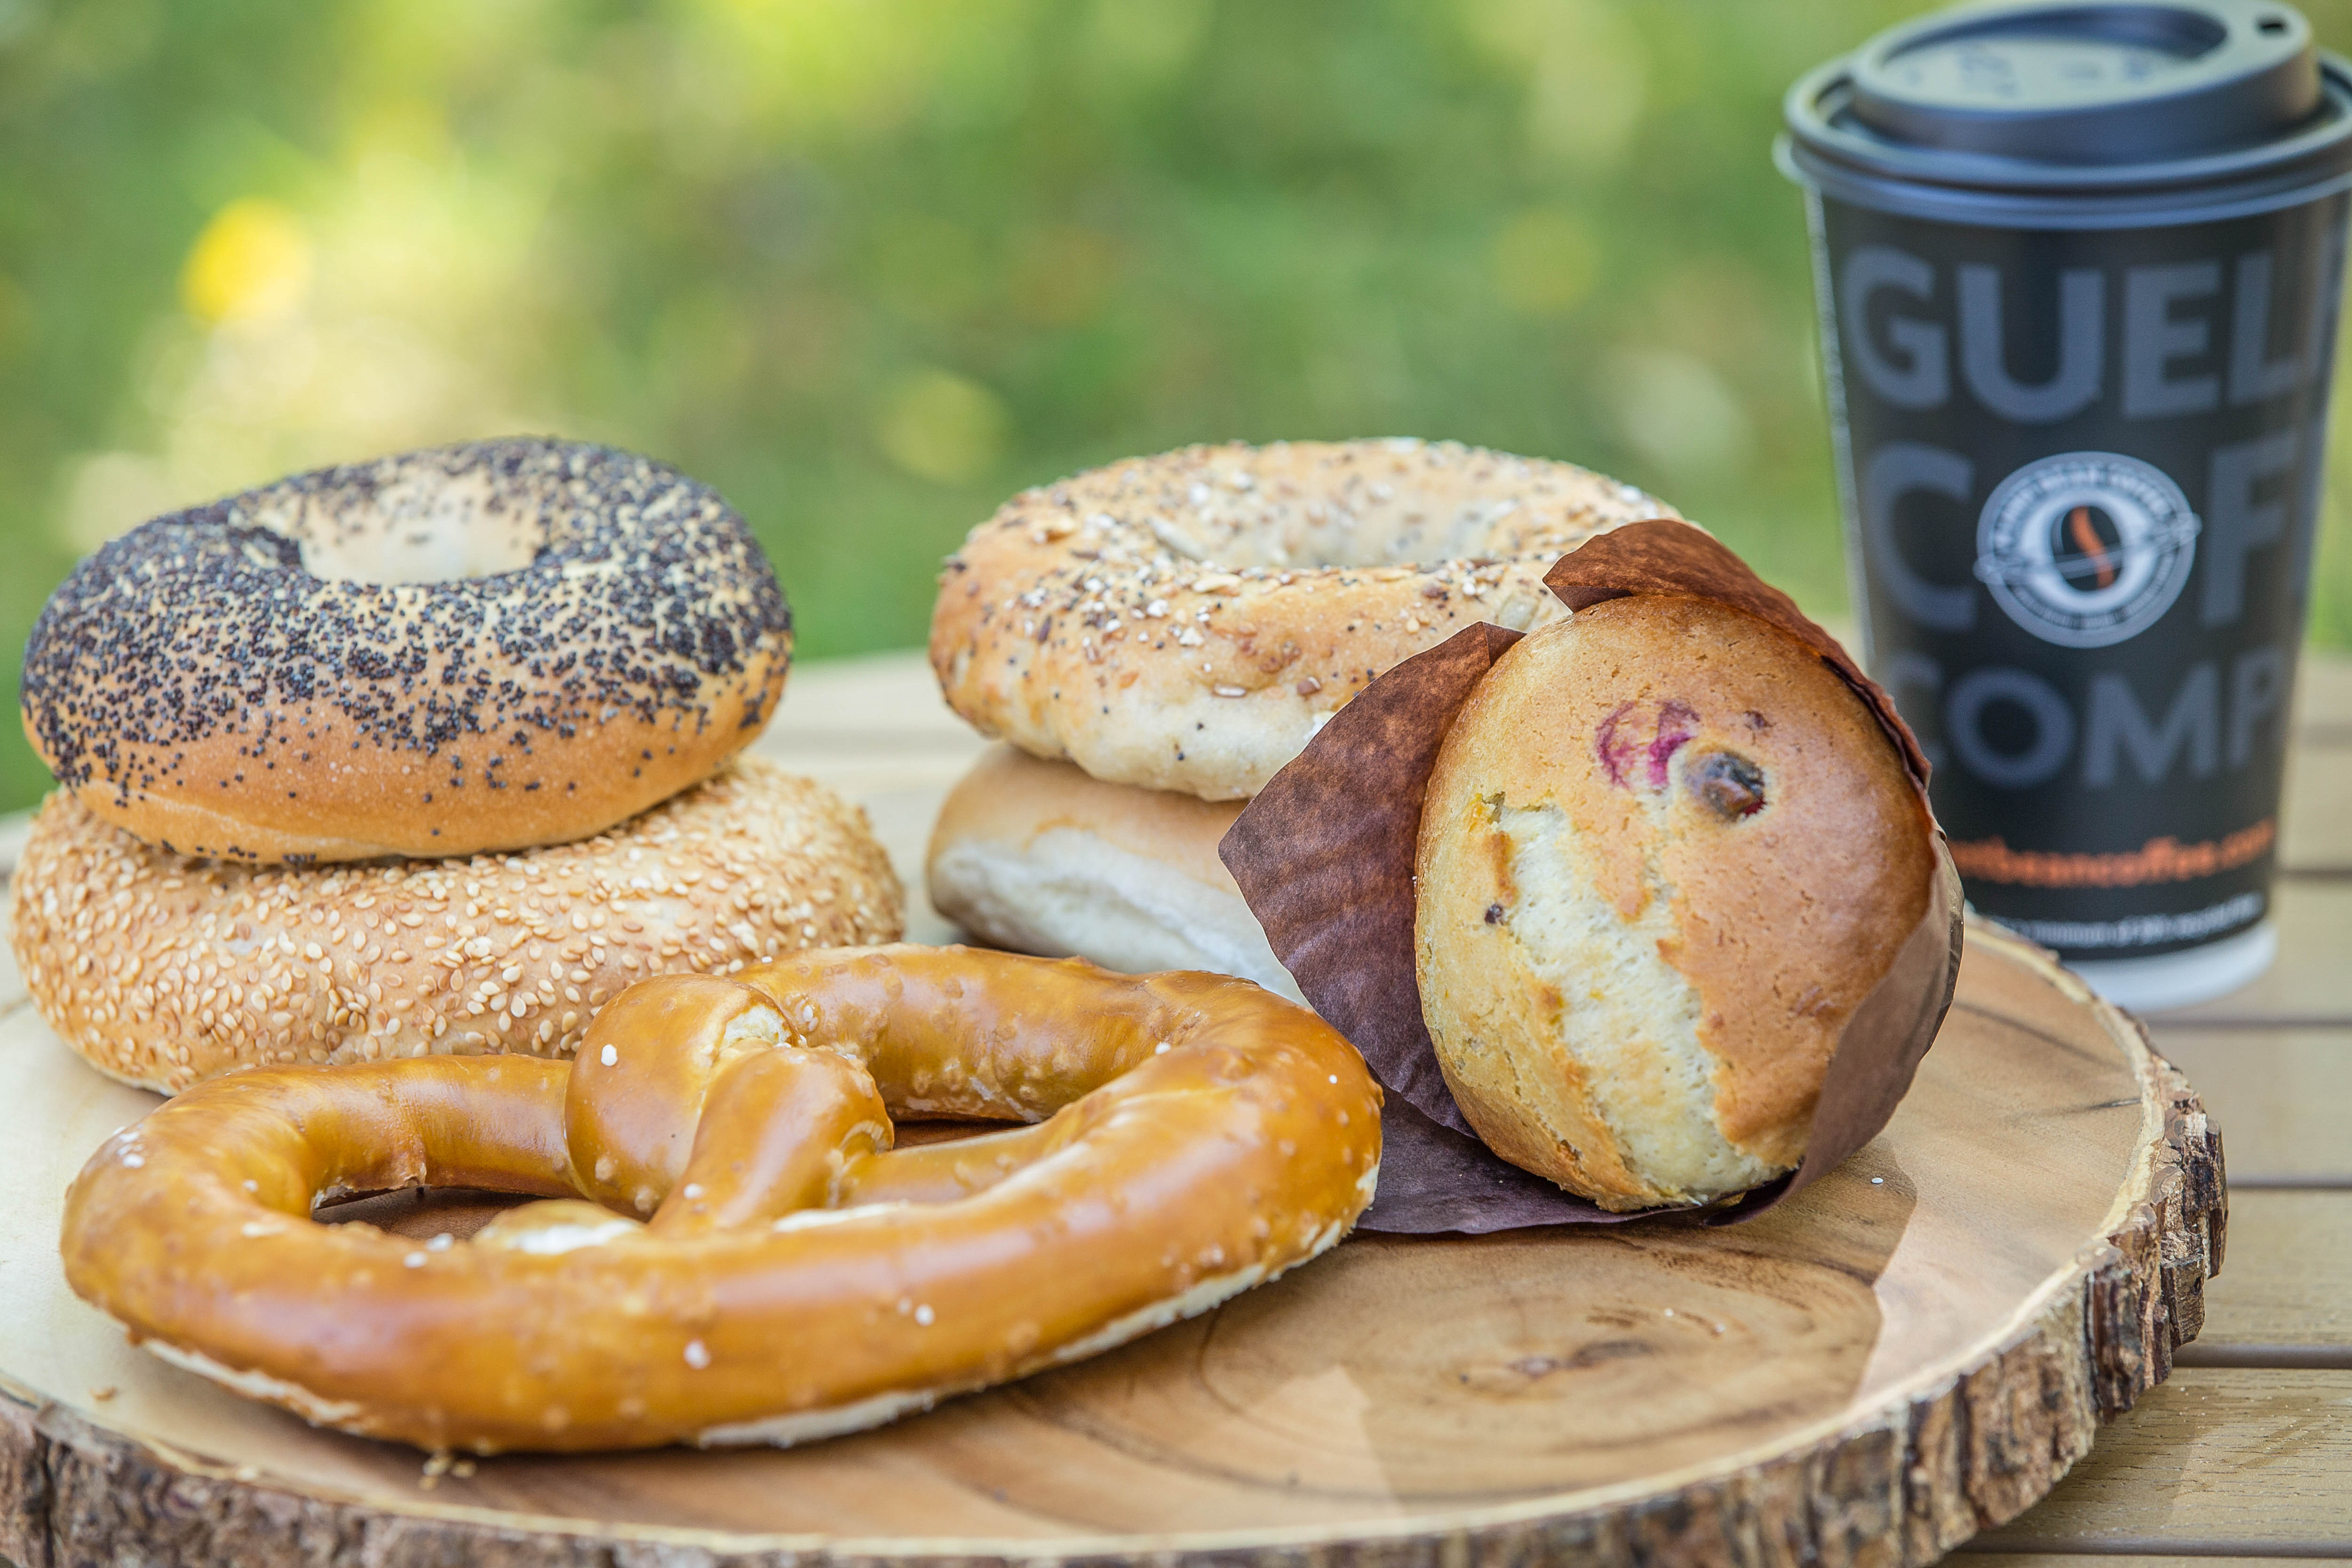 Image of various Bagels and Doughnuts